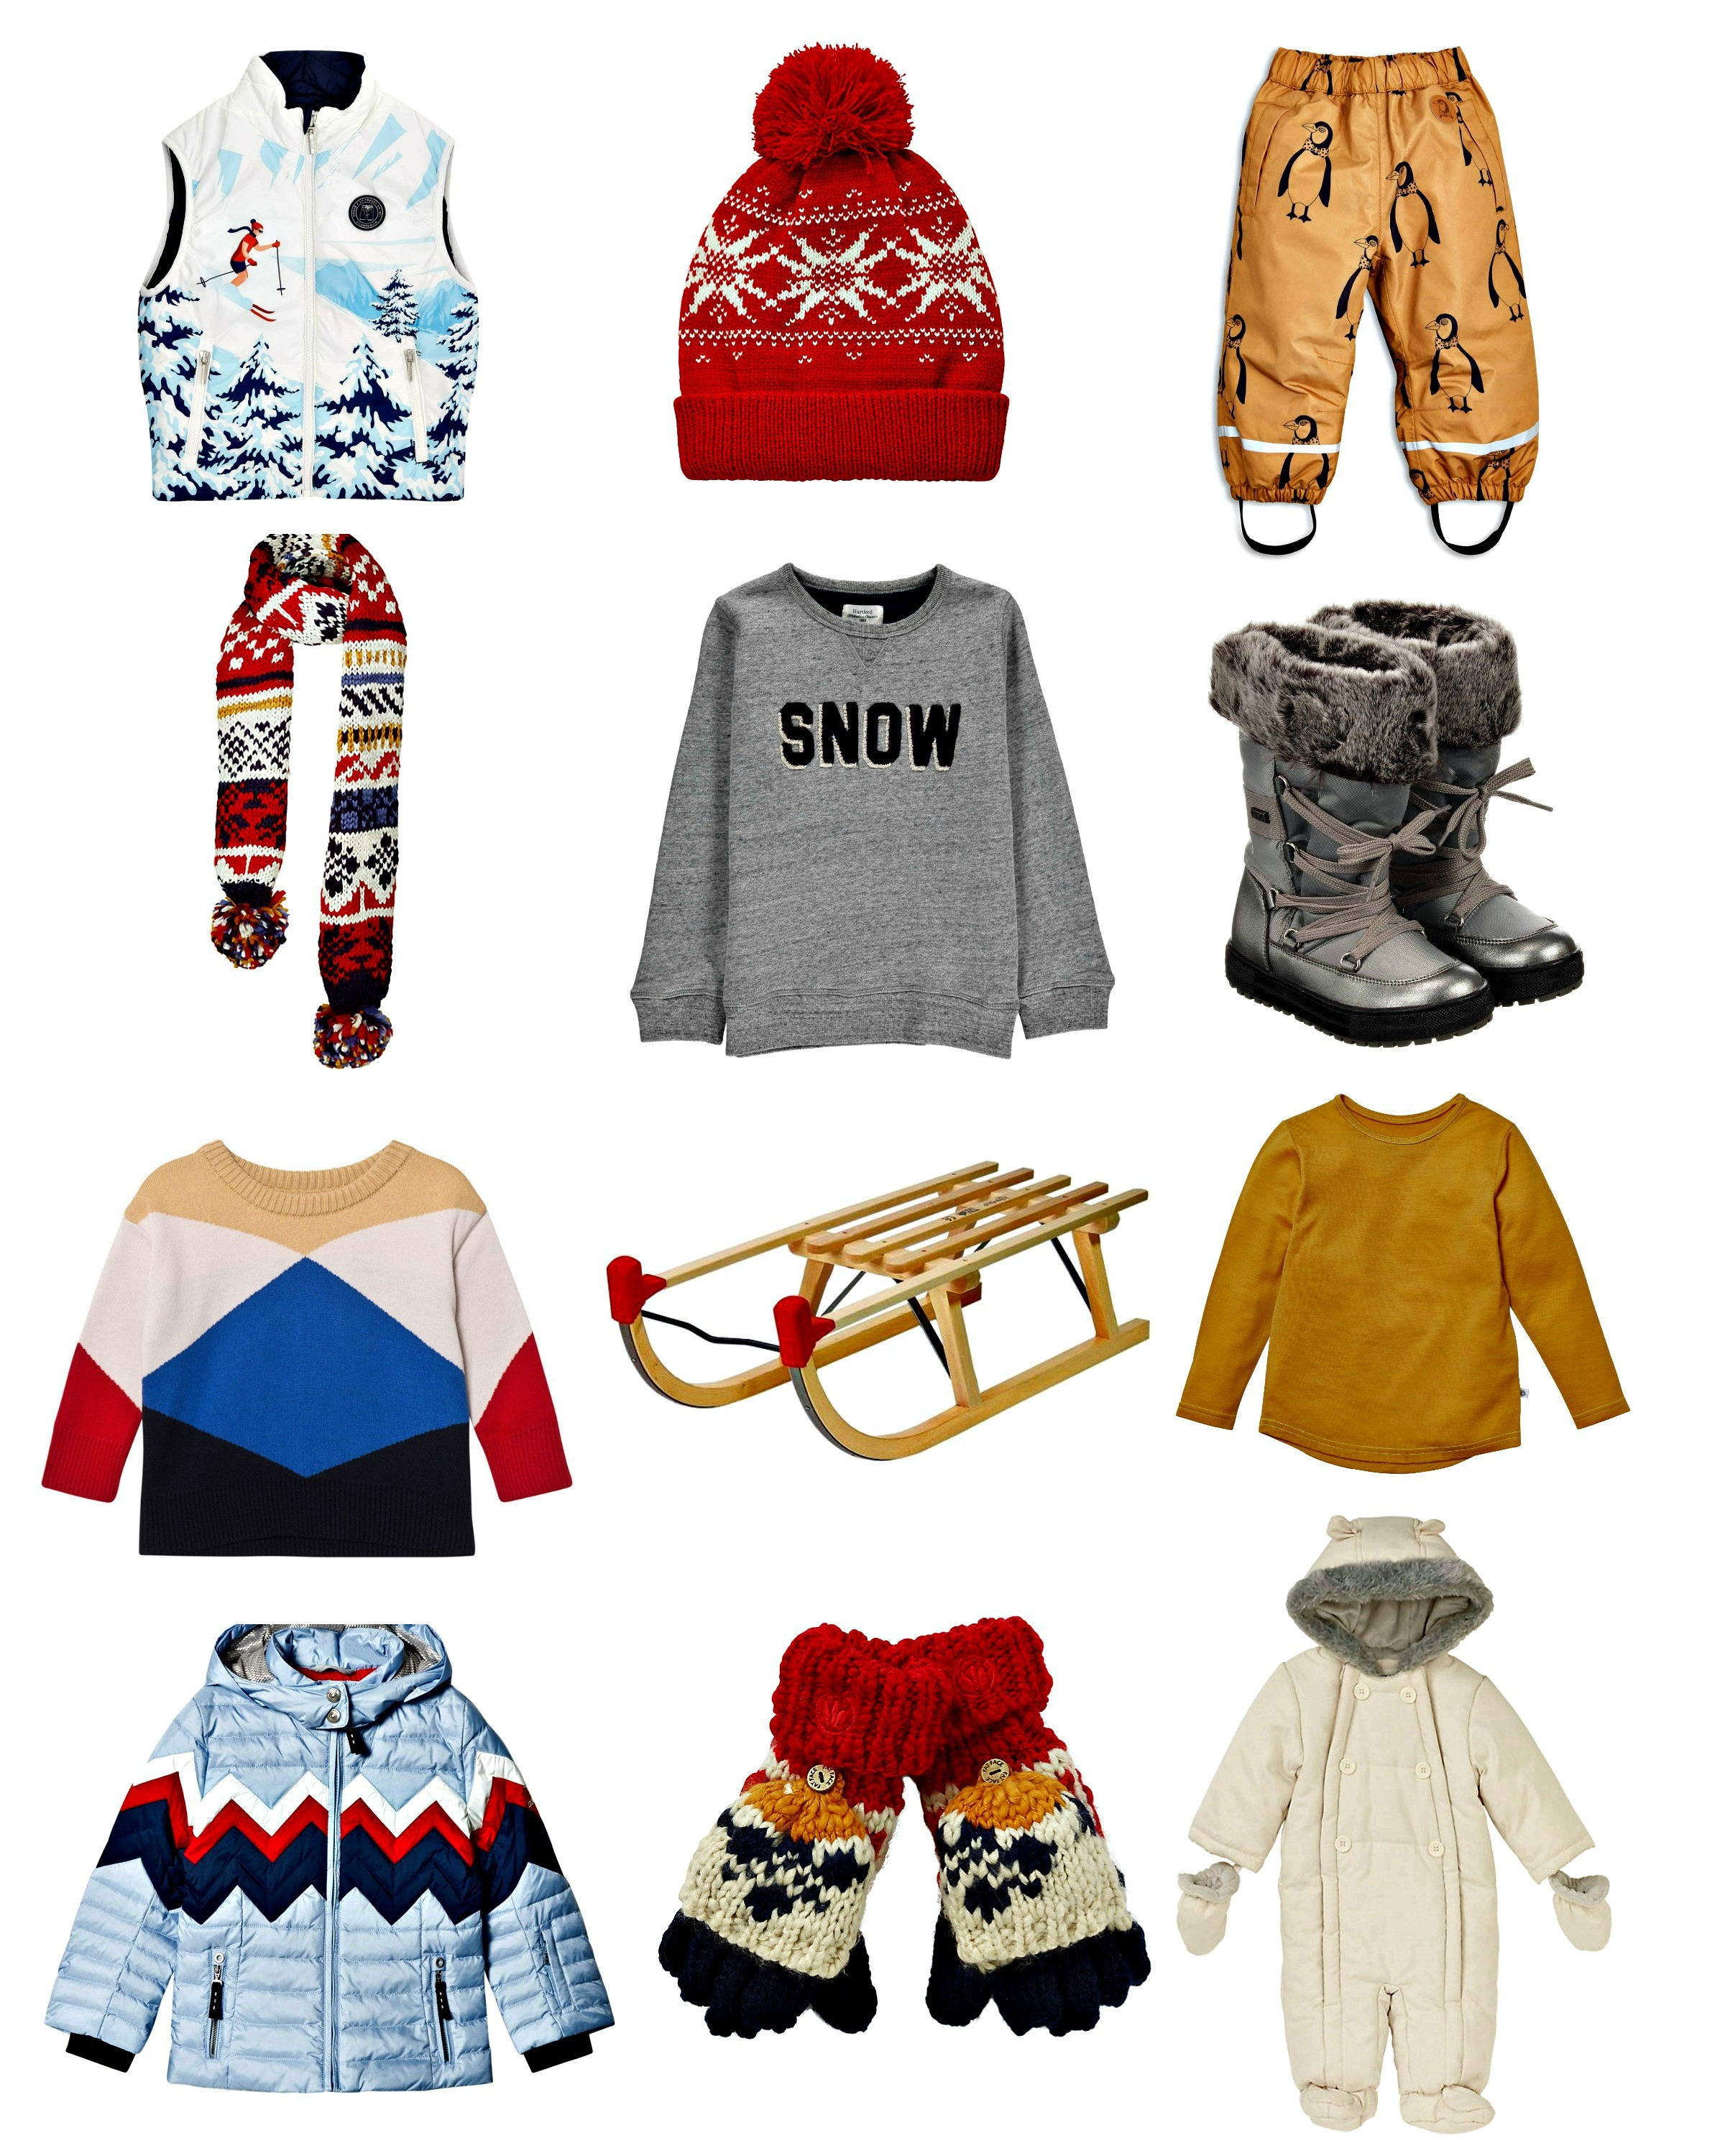 Our pick of the most stylish ski wear for children